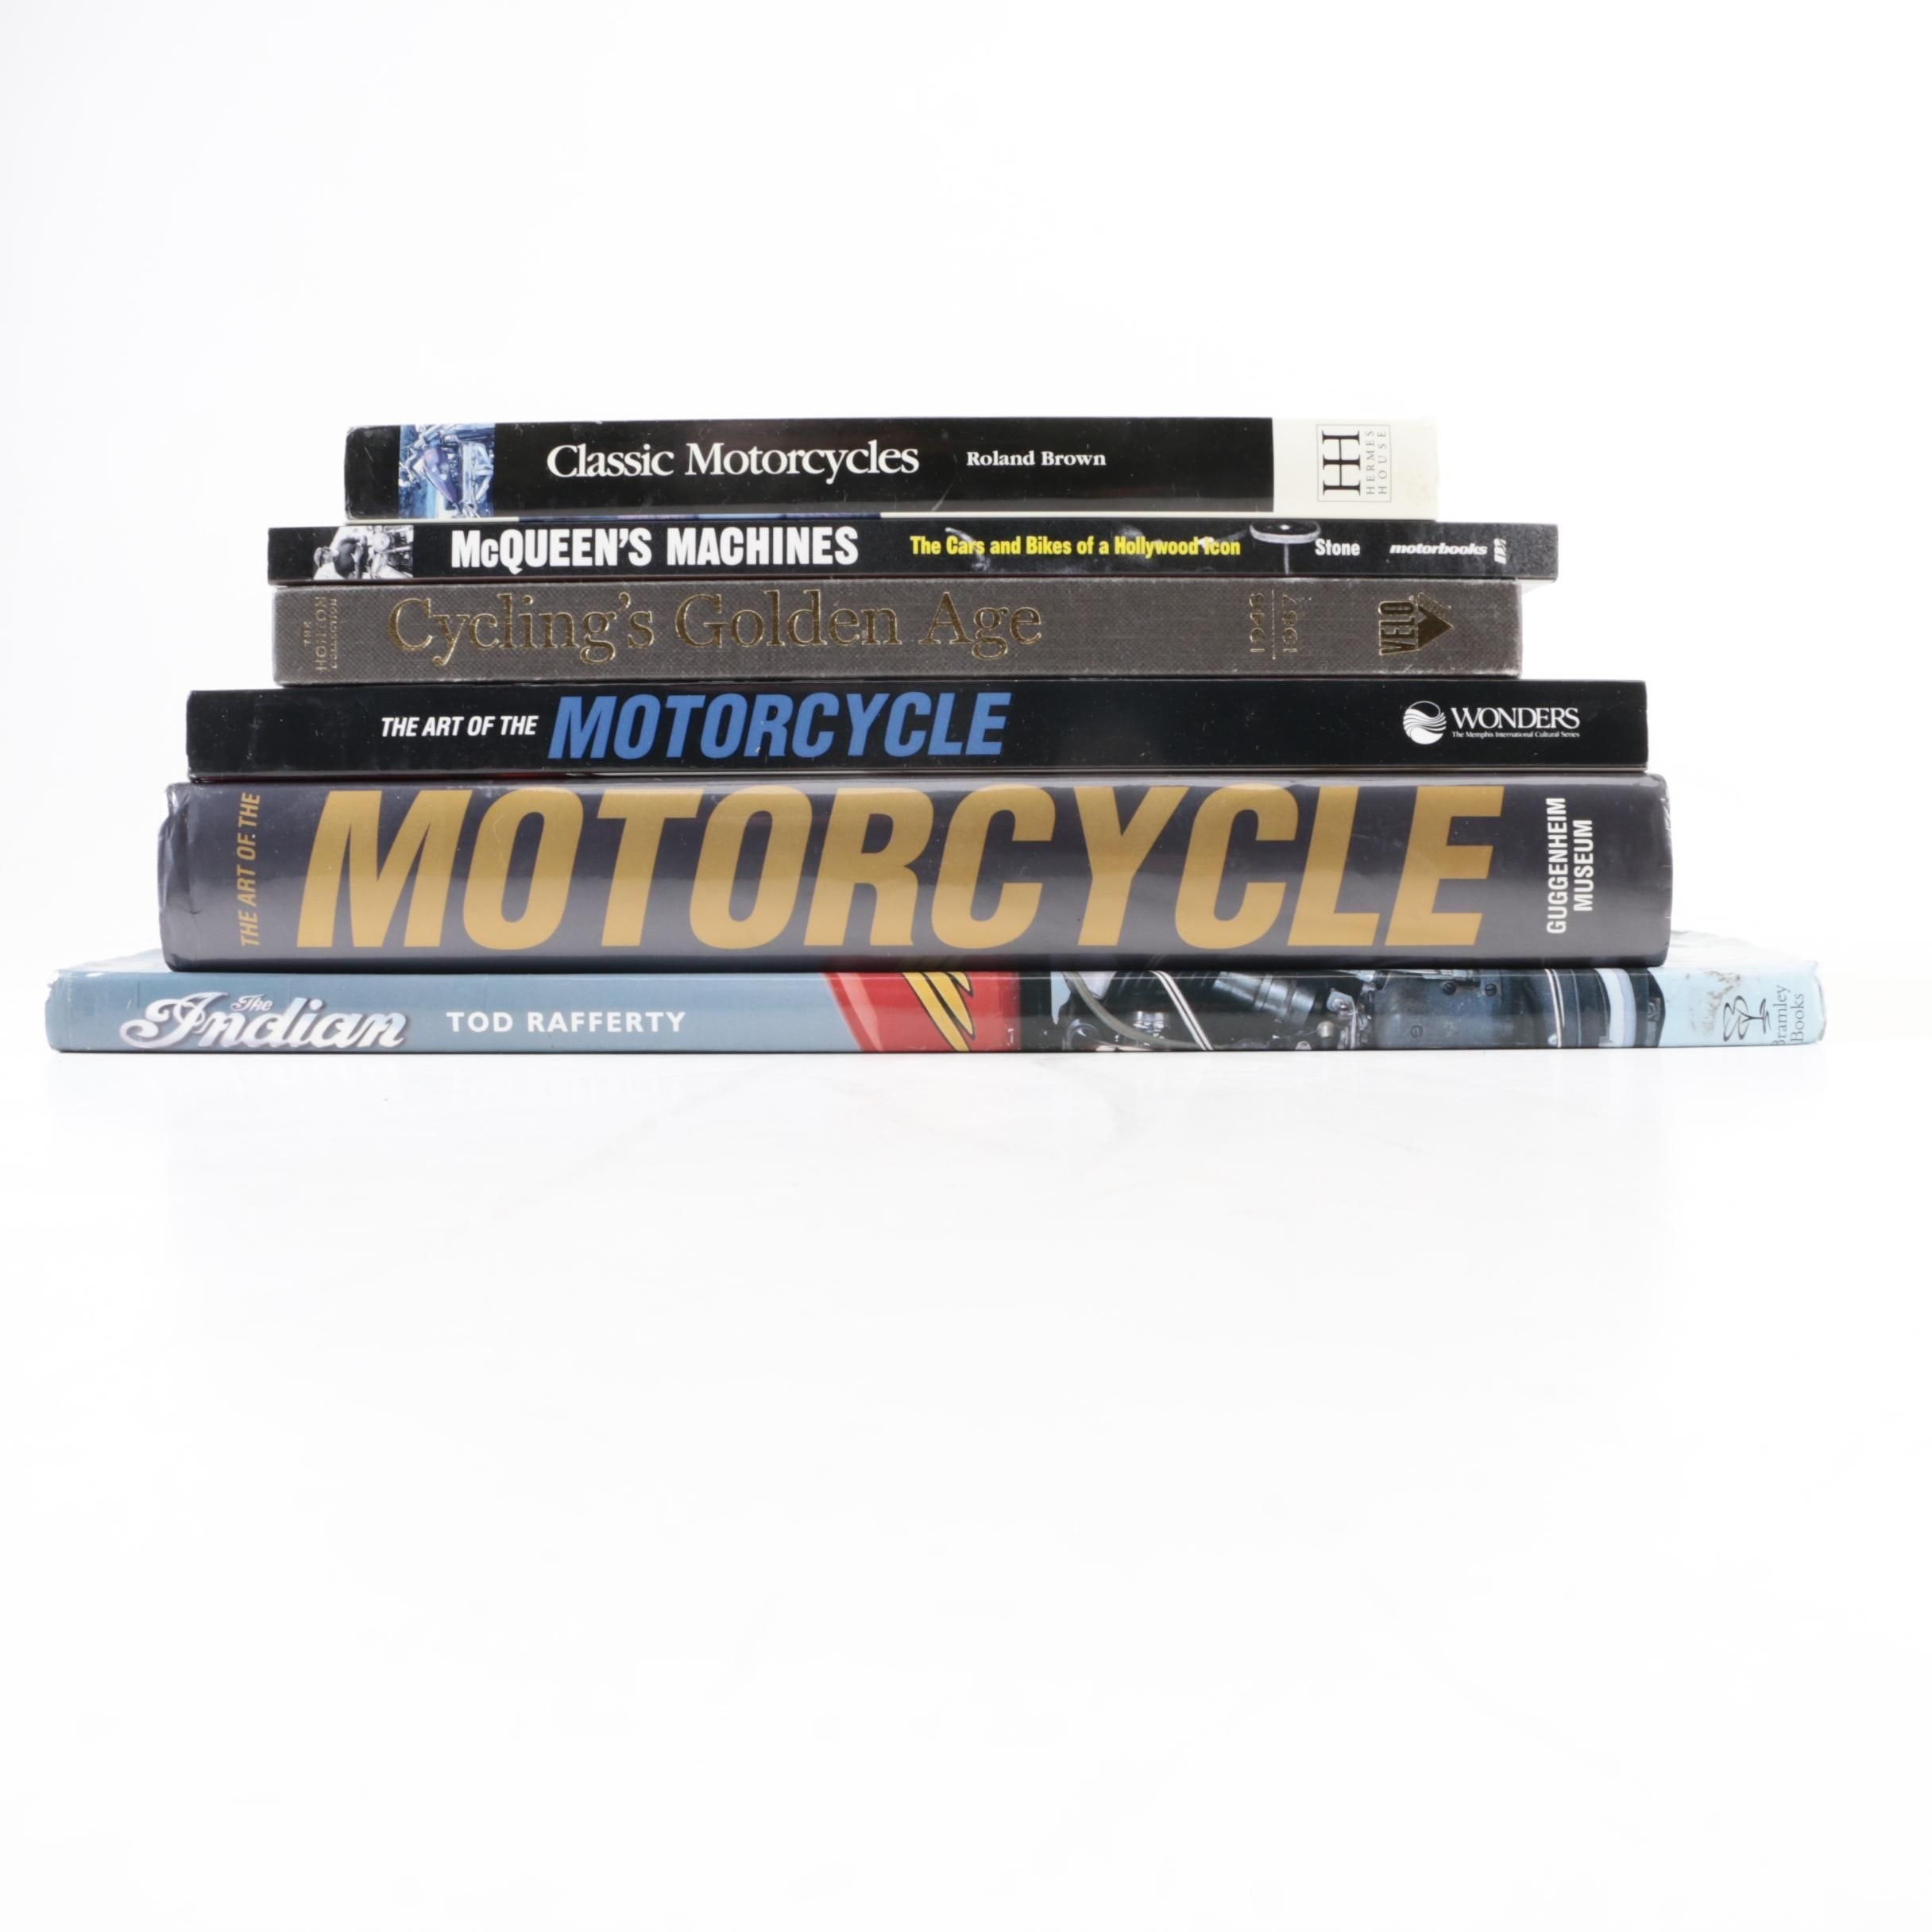 Books on Motorcycles and Cycling